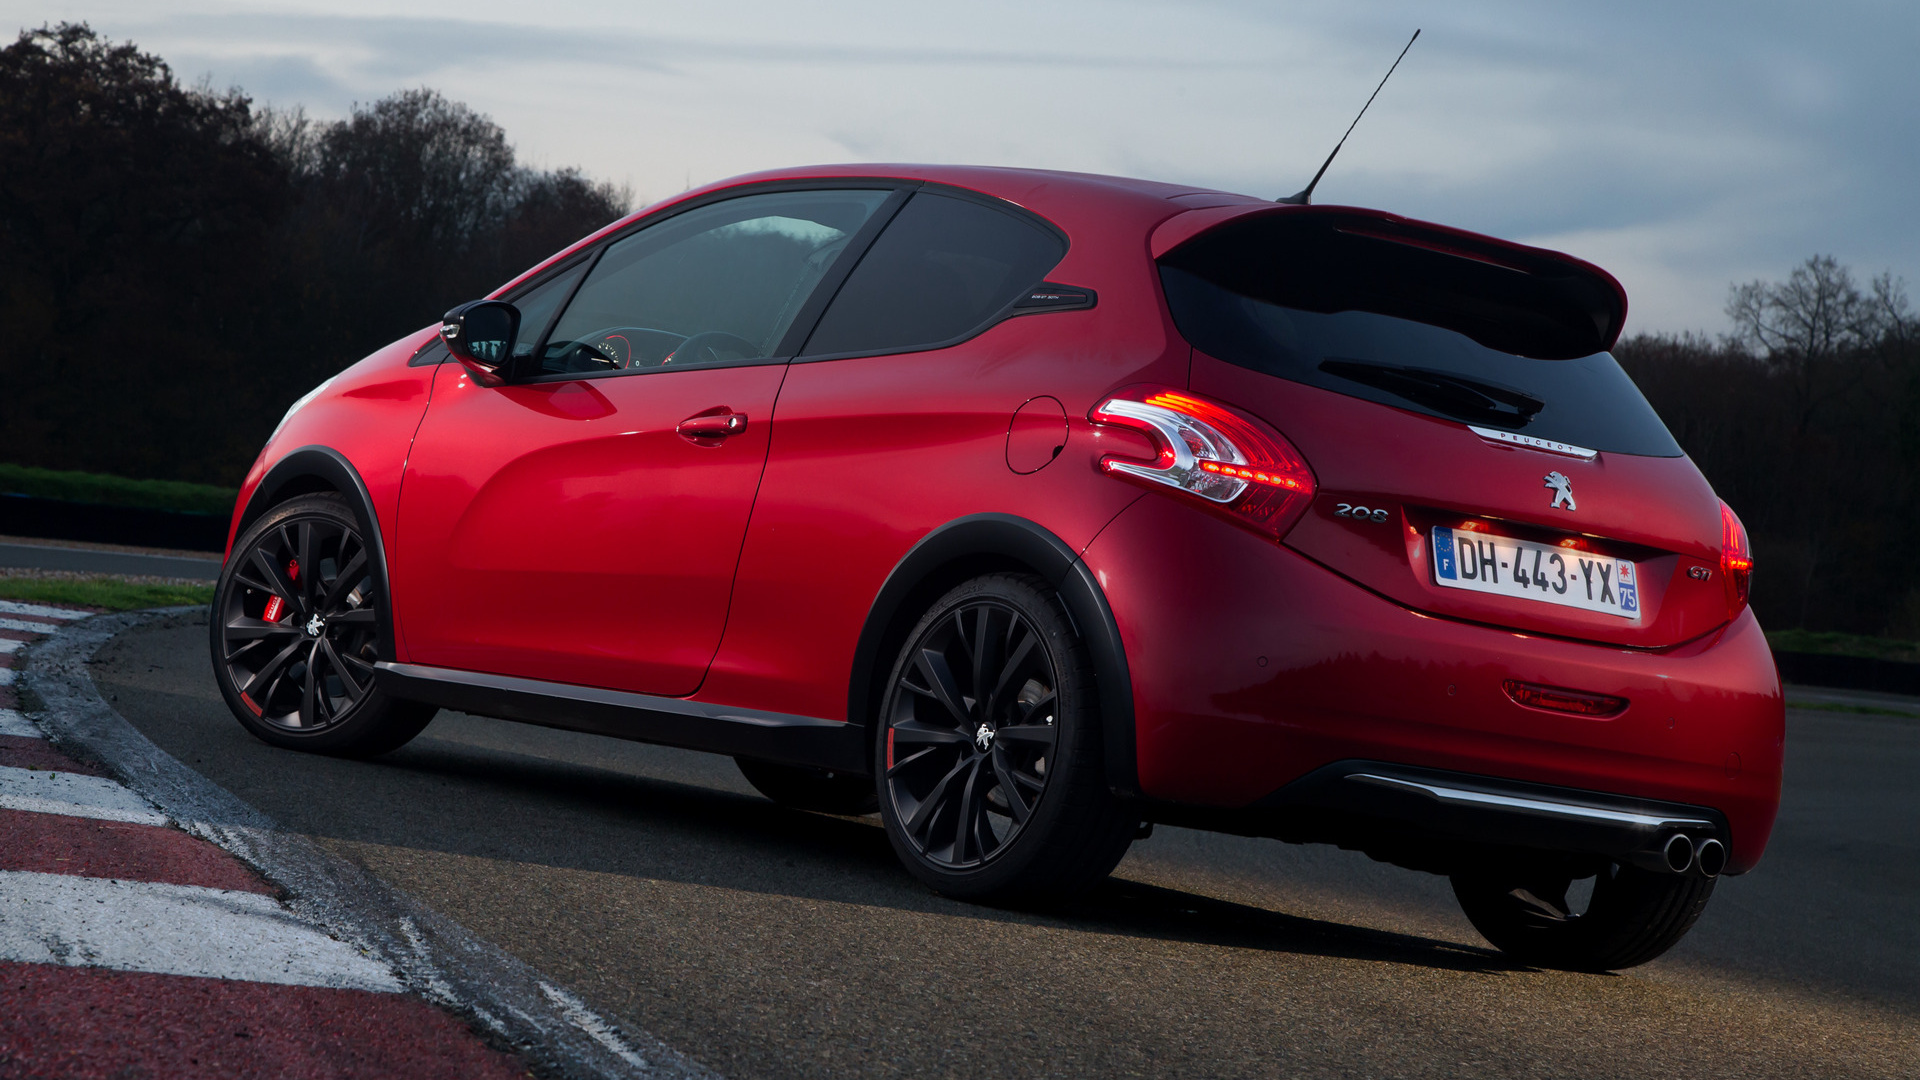 2014 peugeot 208 gti 30th anniversary wallpapers and hd images car pixel. Black Bedroom Furniture Sets. Home Design Ideas